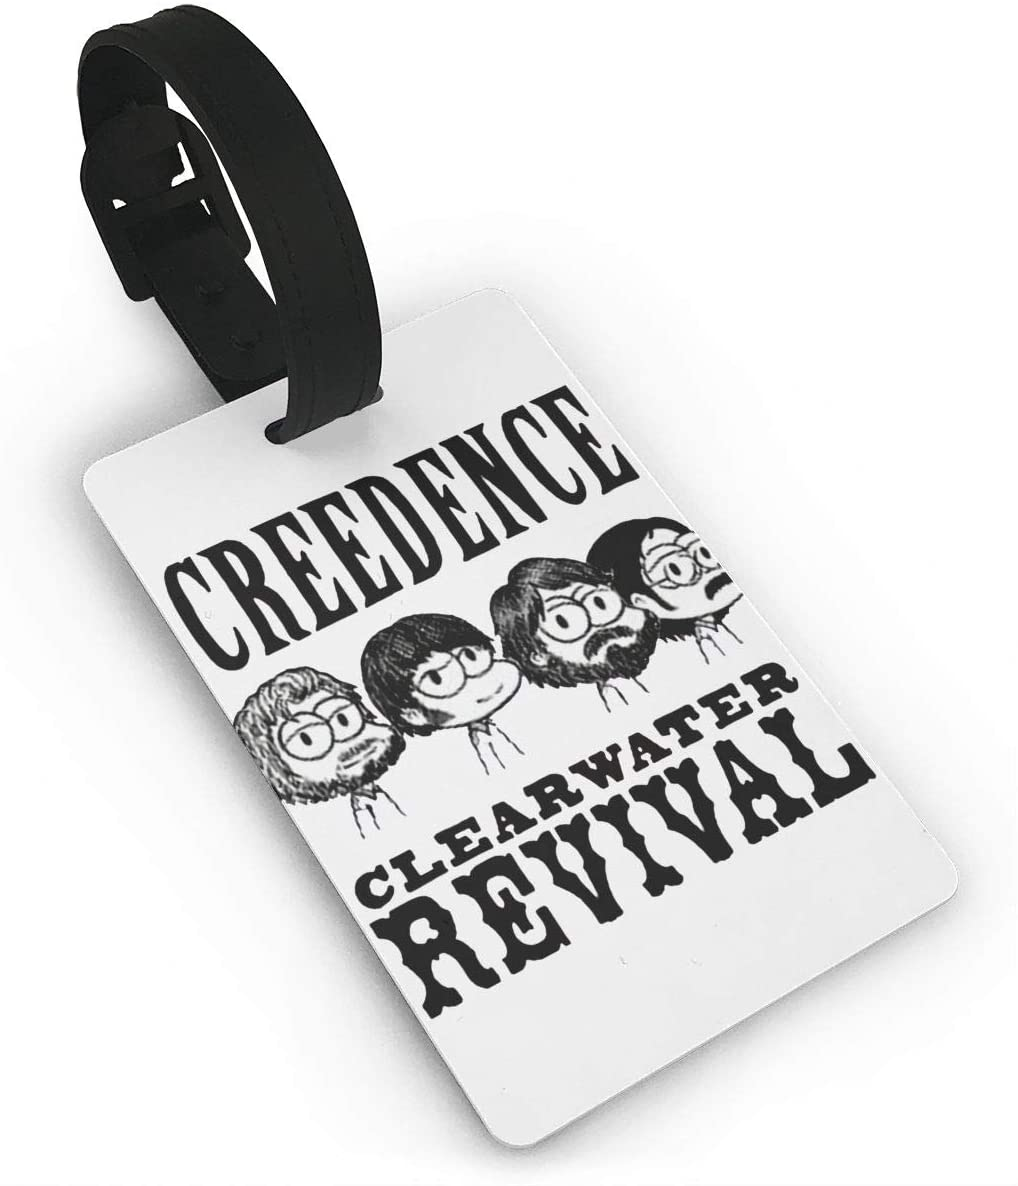 Creedence Clearwater Revival Luggage Tagr Bag Tag Travel Suitcases Id Identifier Baggage Label 1 Piece